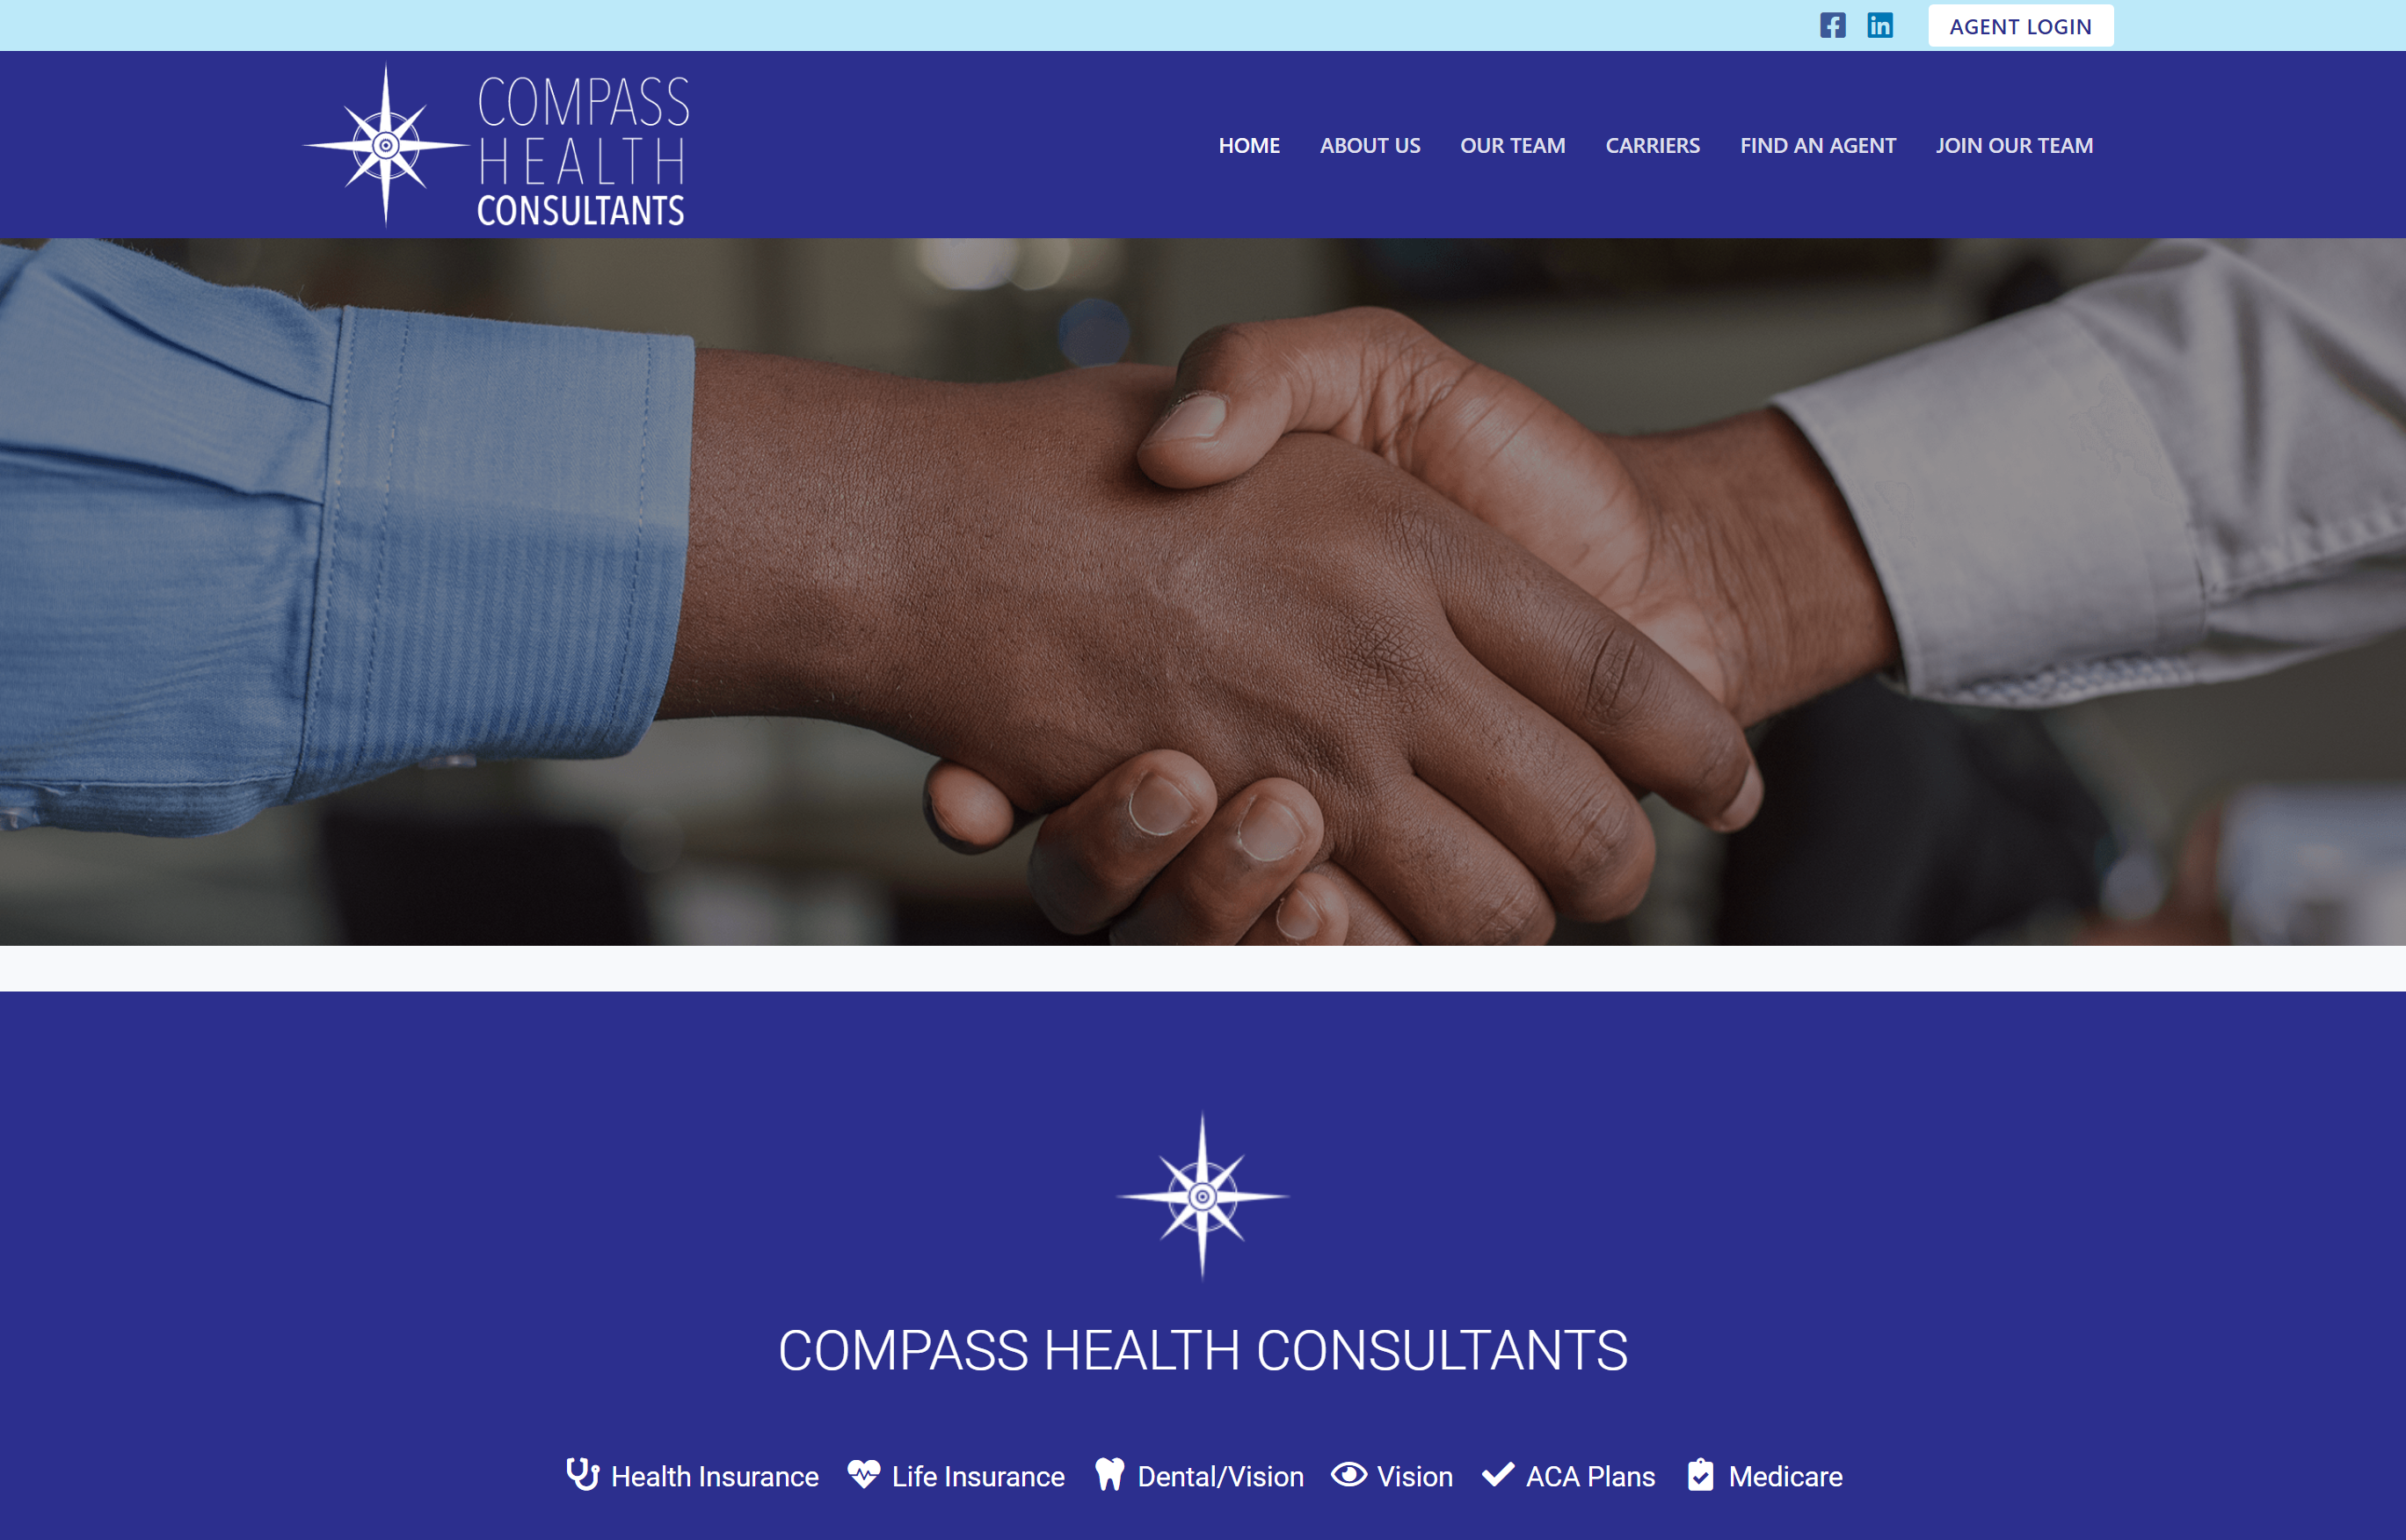 Compass Health Consultants